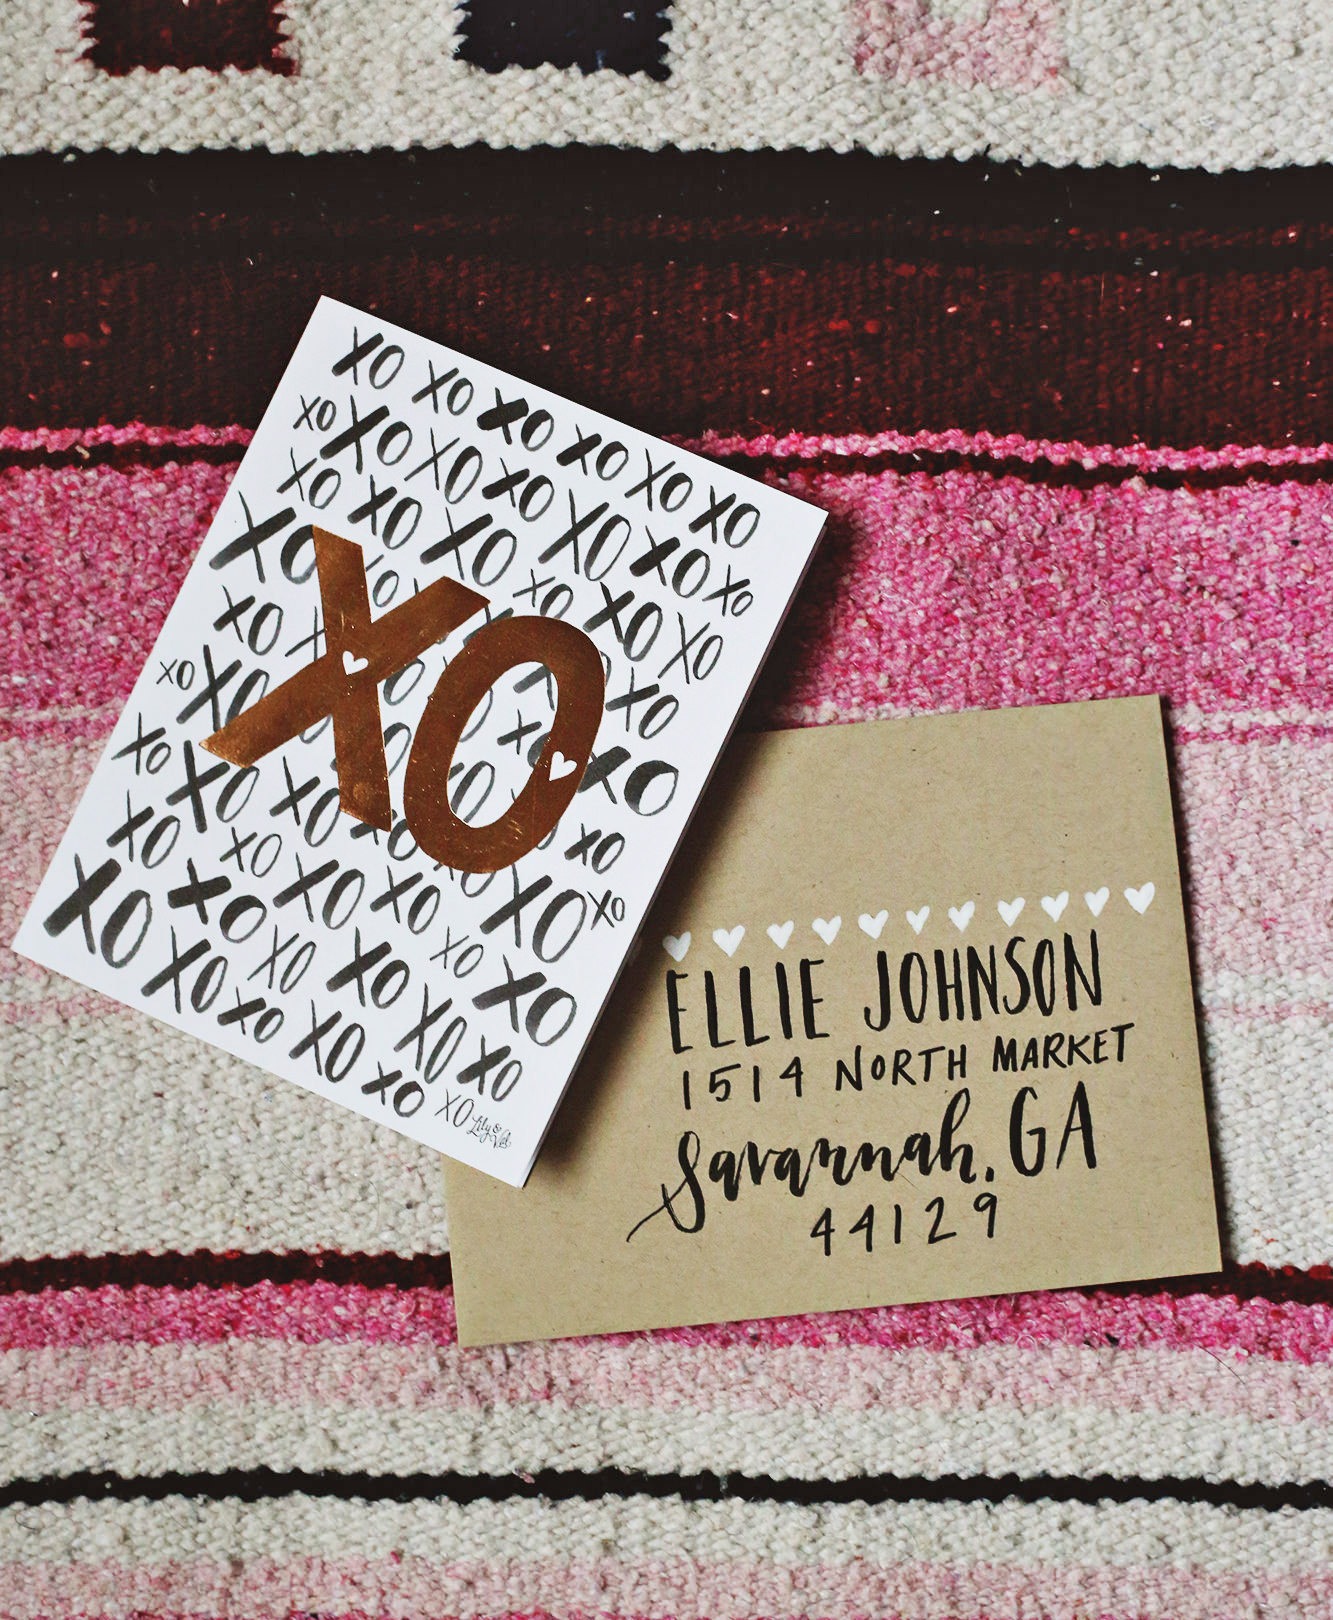 Lily & Val rose gold foil XO card inspired this simple black and white envelope address on a kraft paper envelope